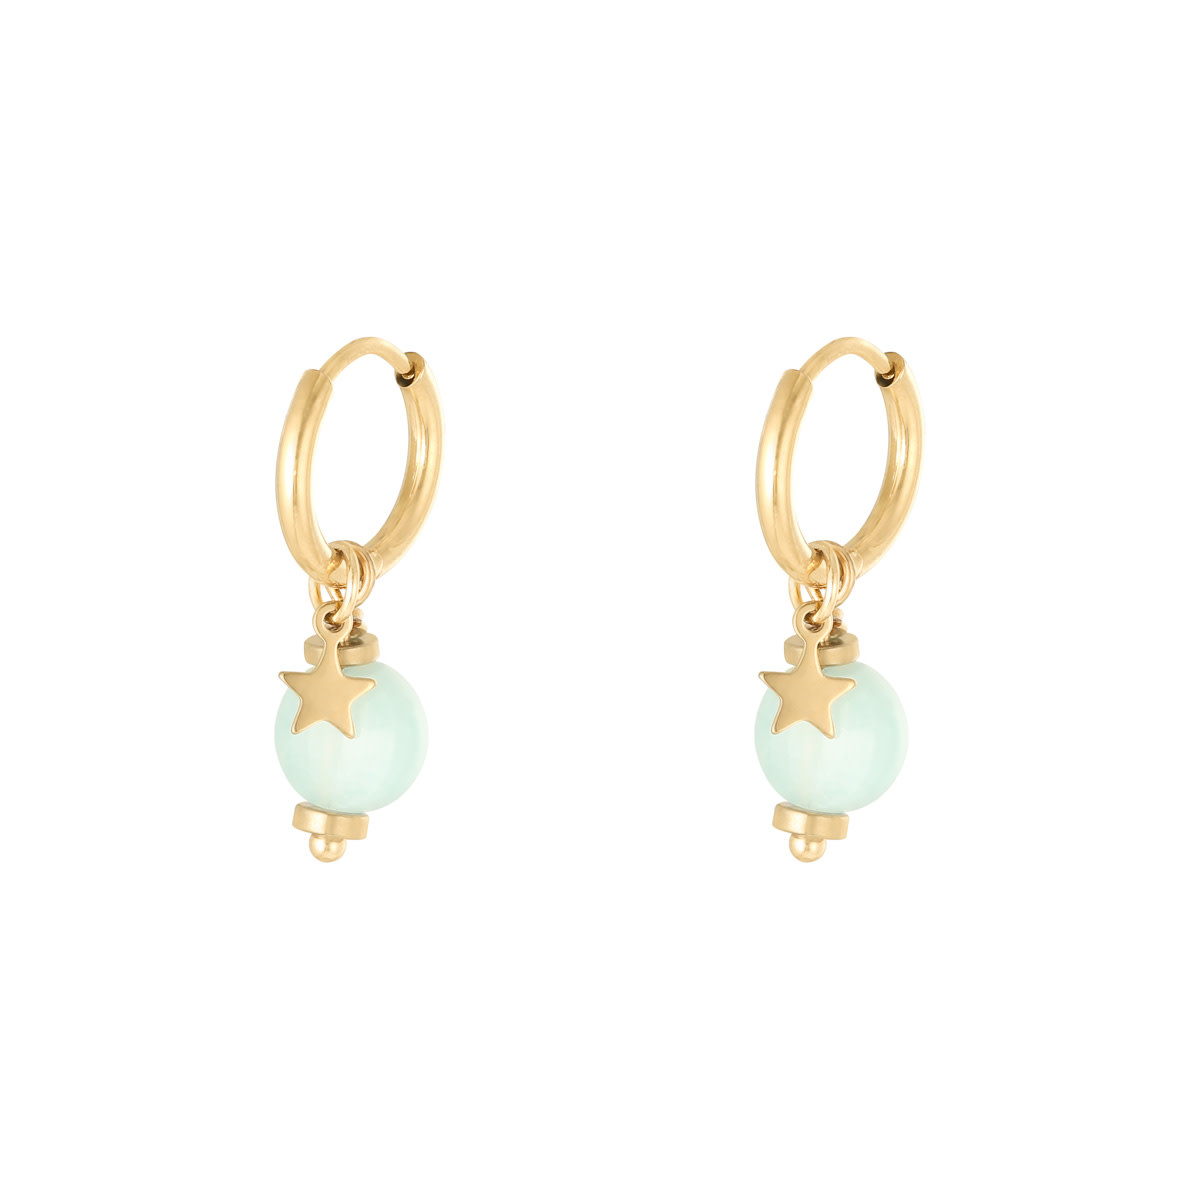 With love Earrings so charming gold - mint